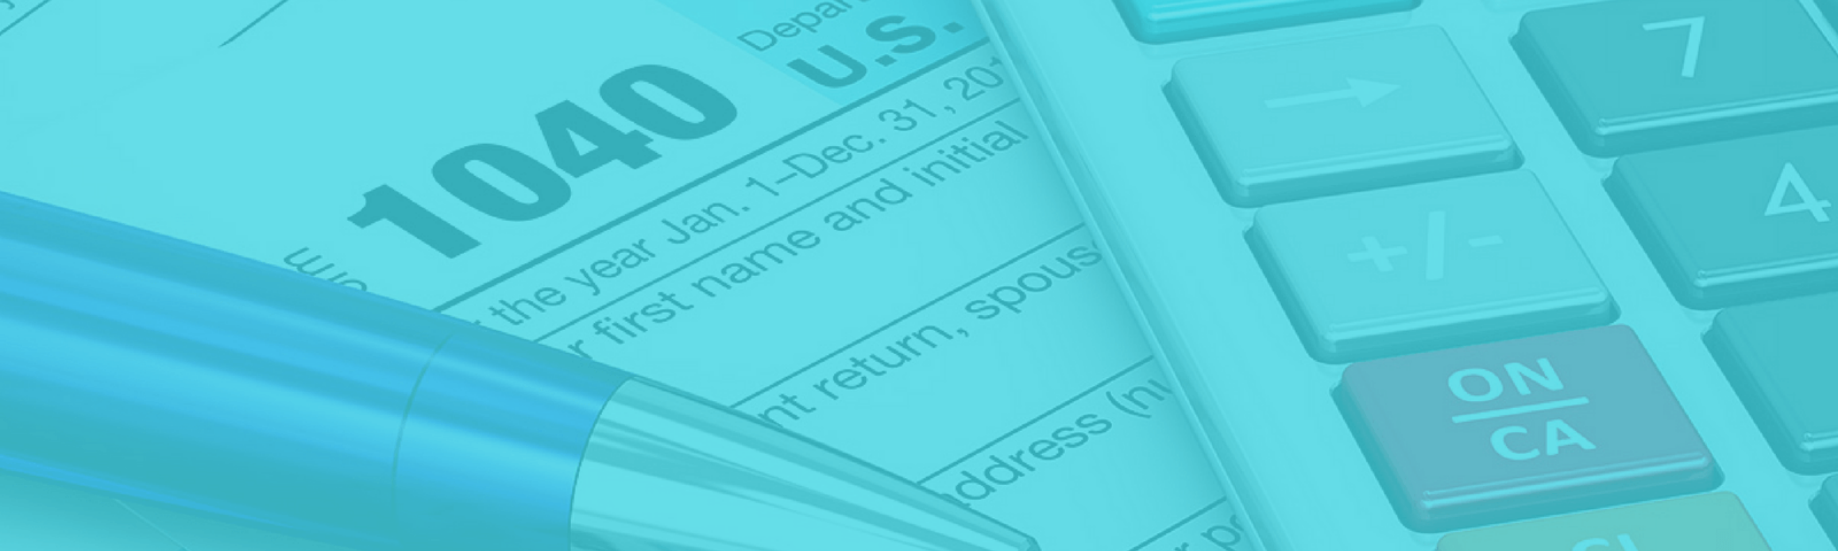 How to Do Taxes in Excel - Free Template Included